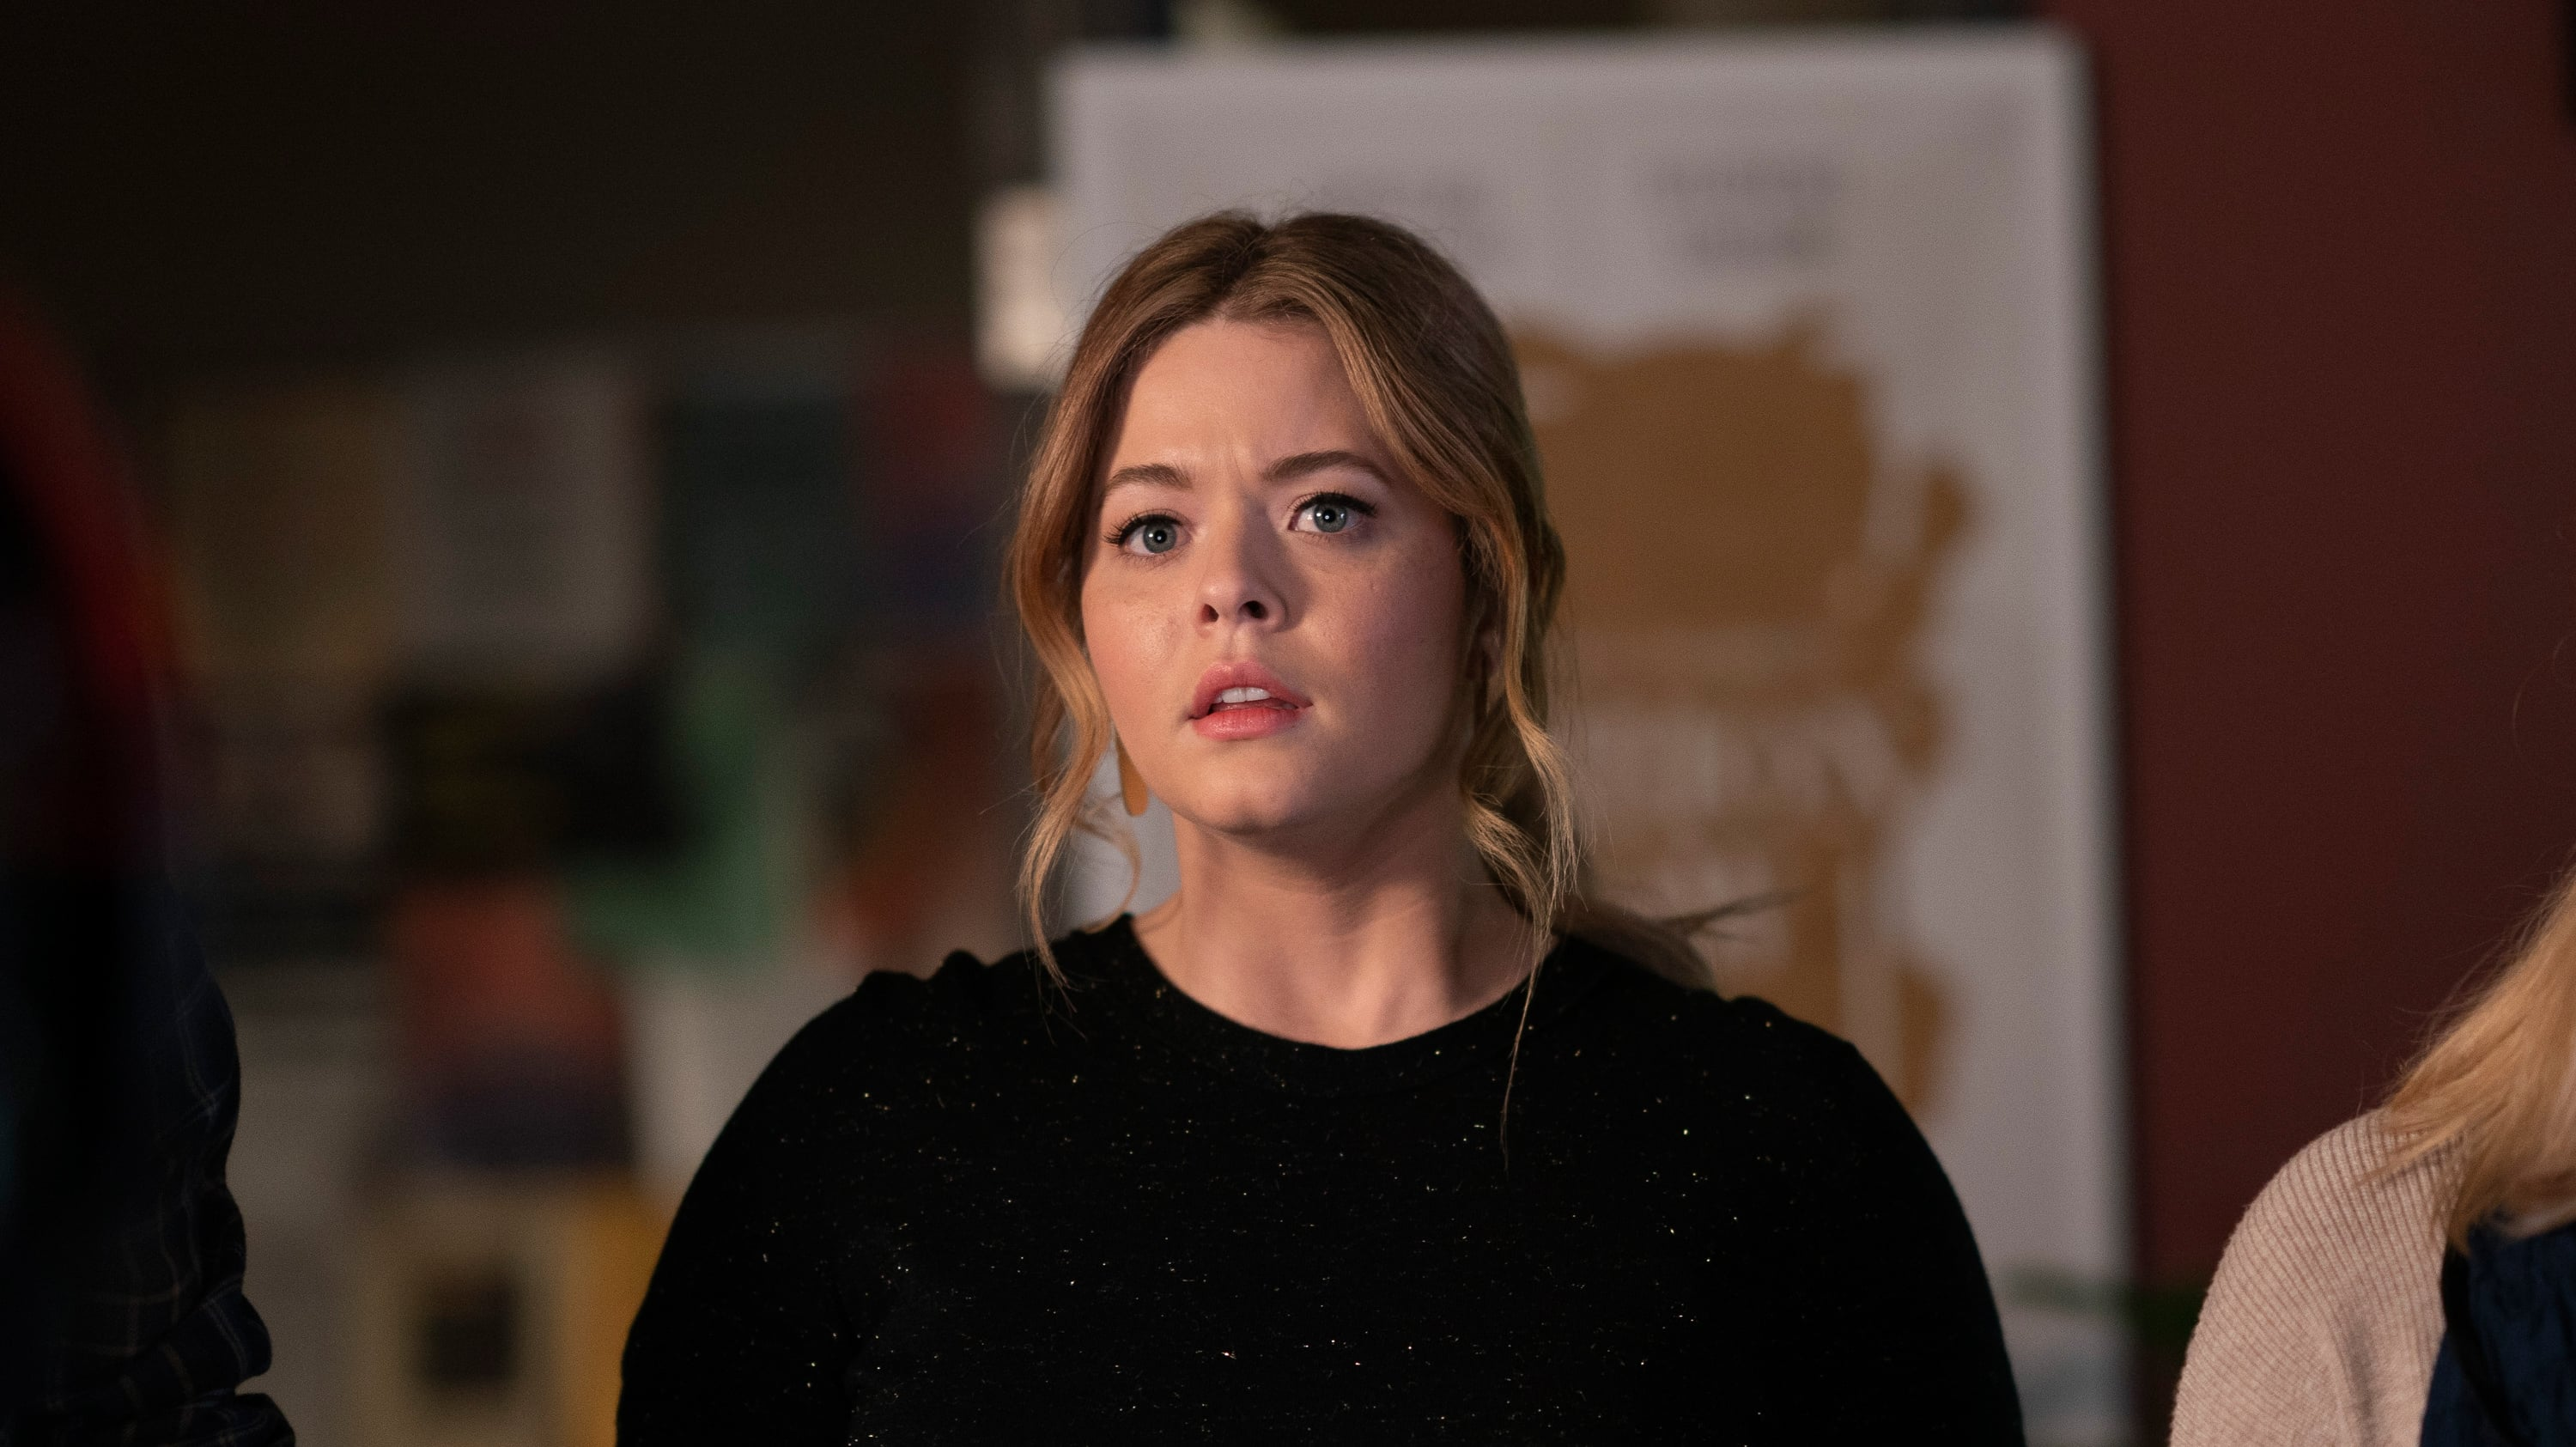 Pretty Little Liars: The Perfectionists Season 1 Episode 6